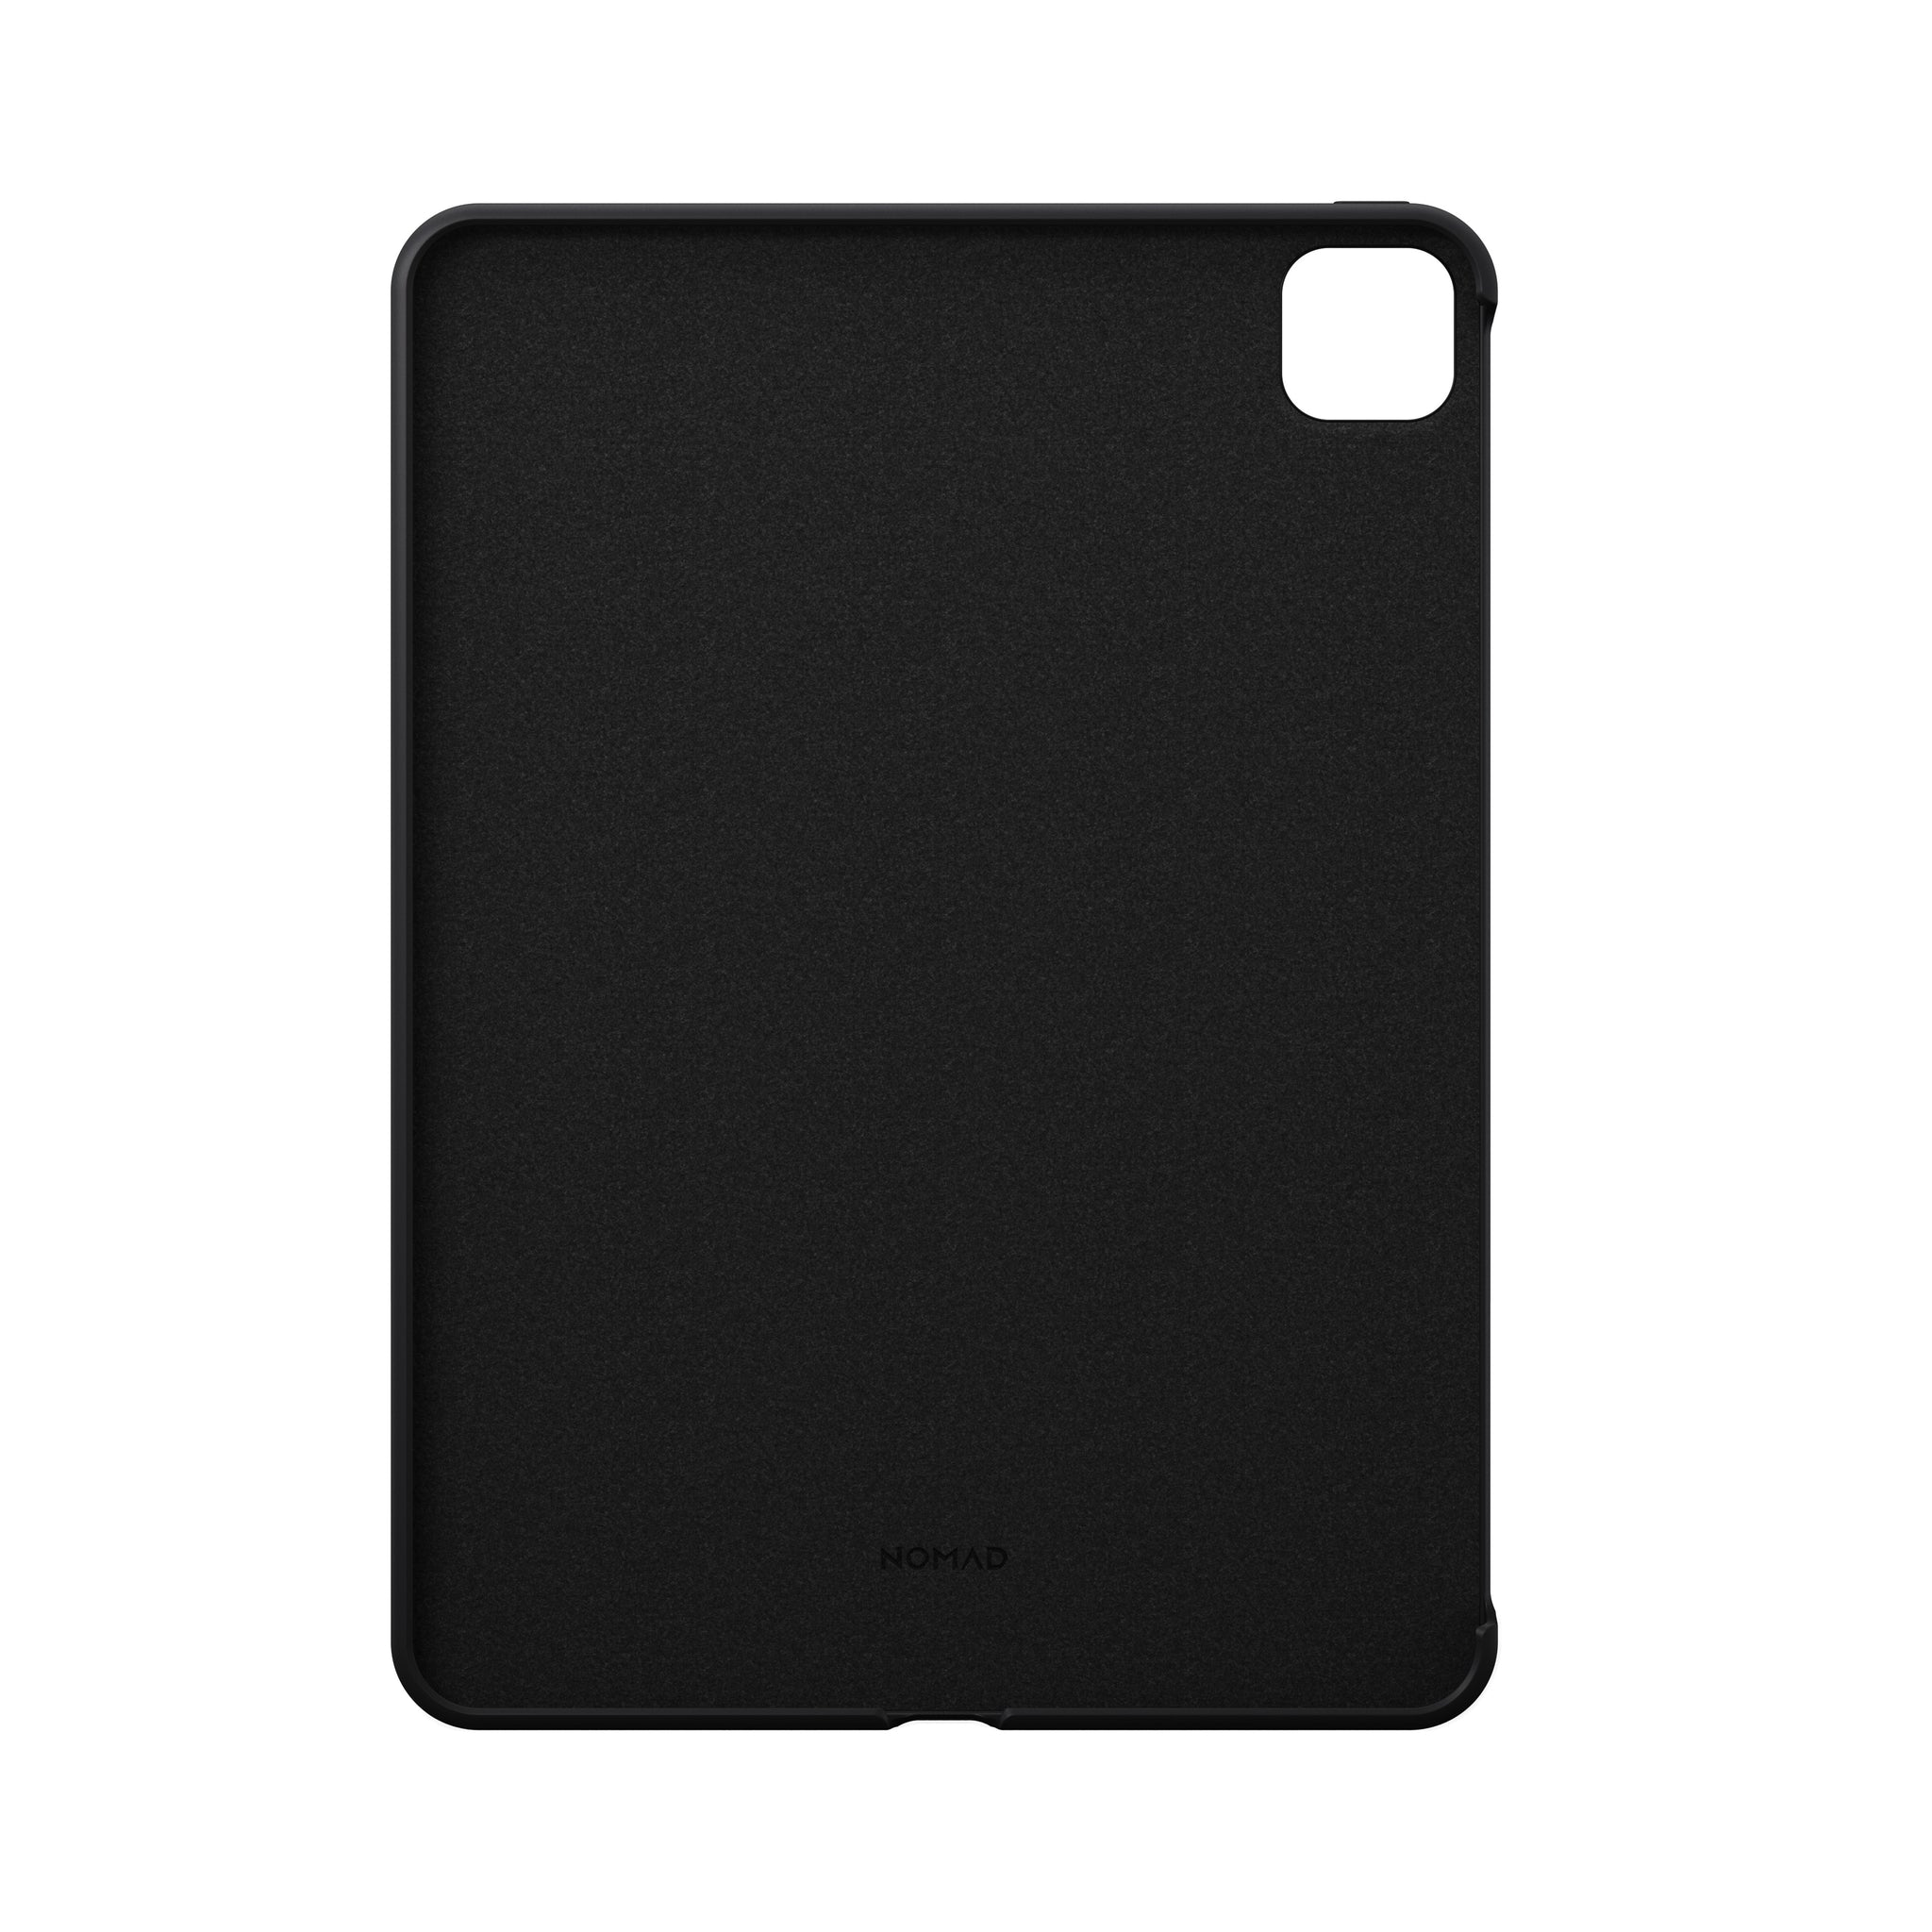 Nomad Rugged Case for iPad Pro 11 - Black